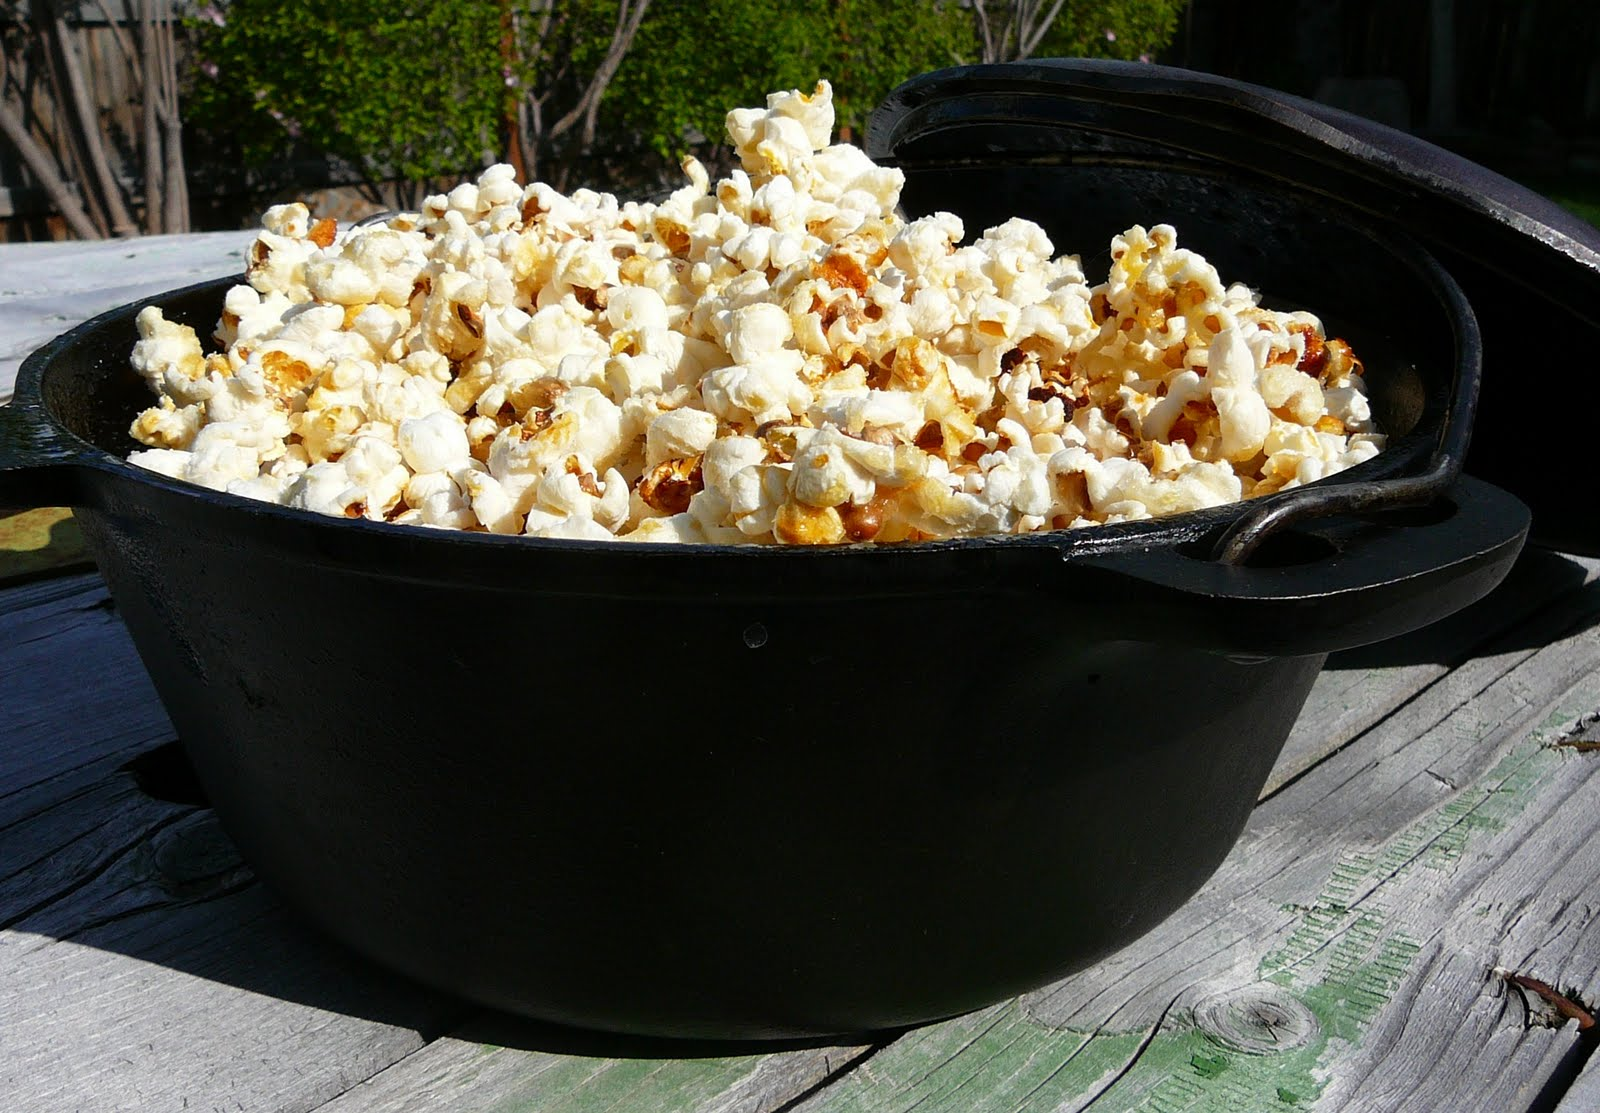 Can't wait for your local farmer's market or fair to have kettle corn...